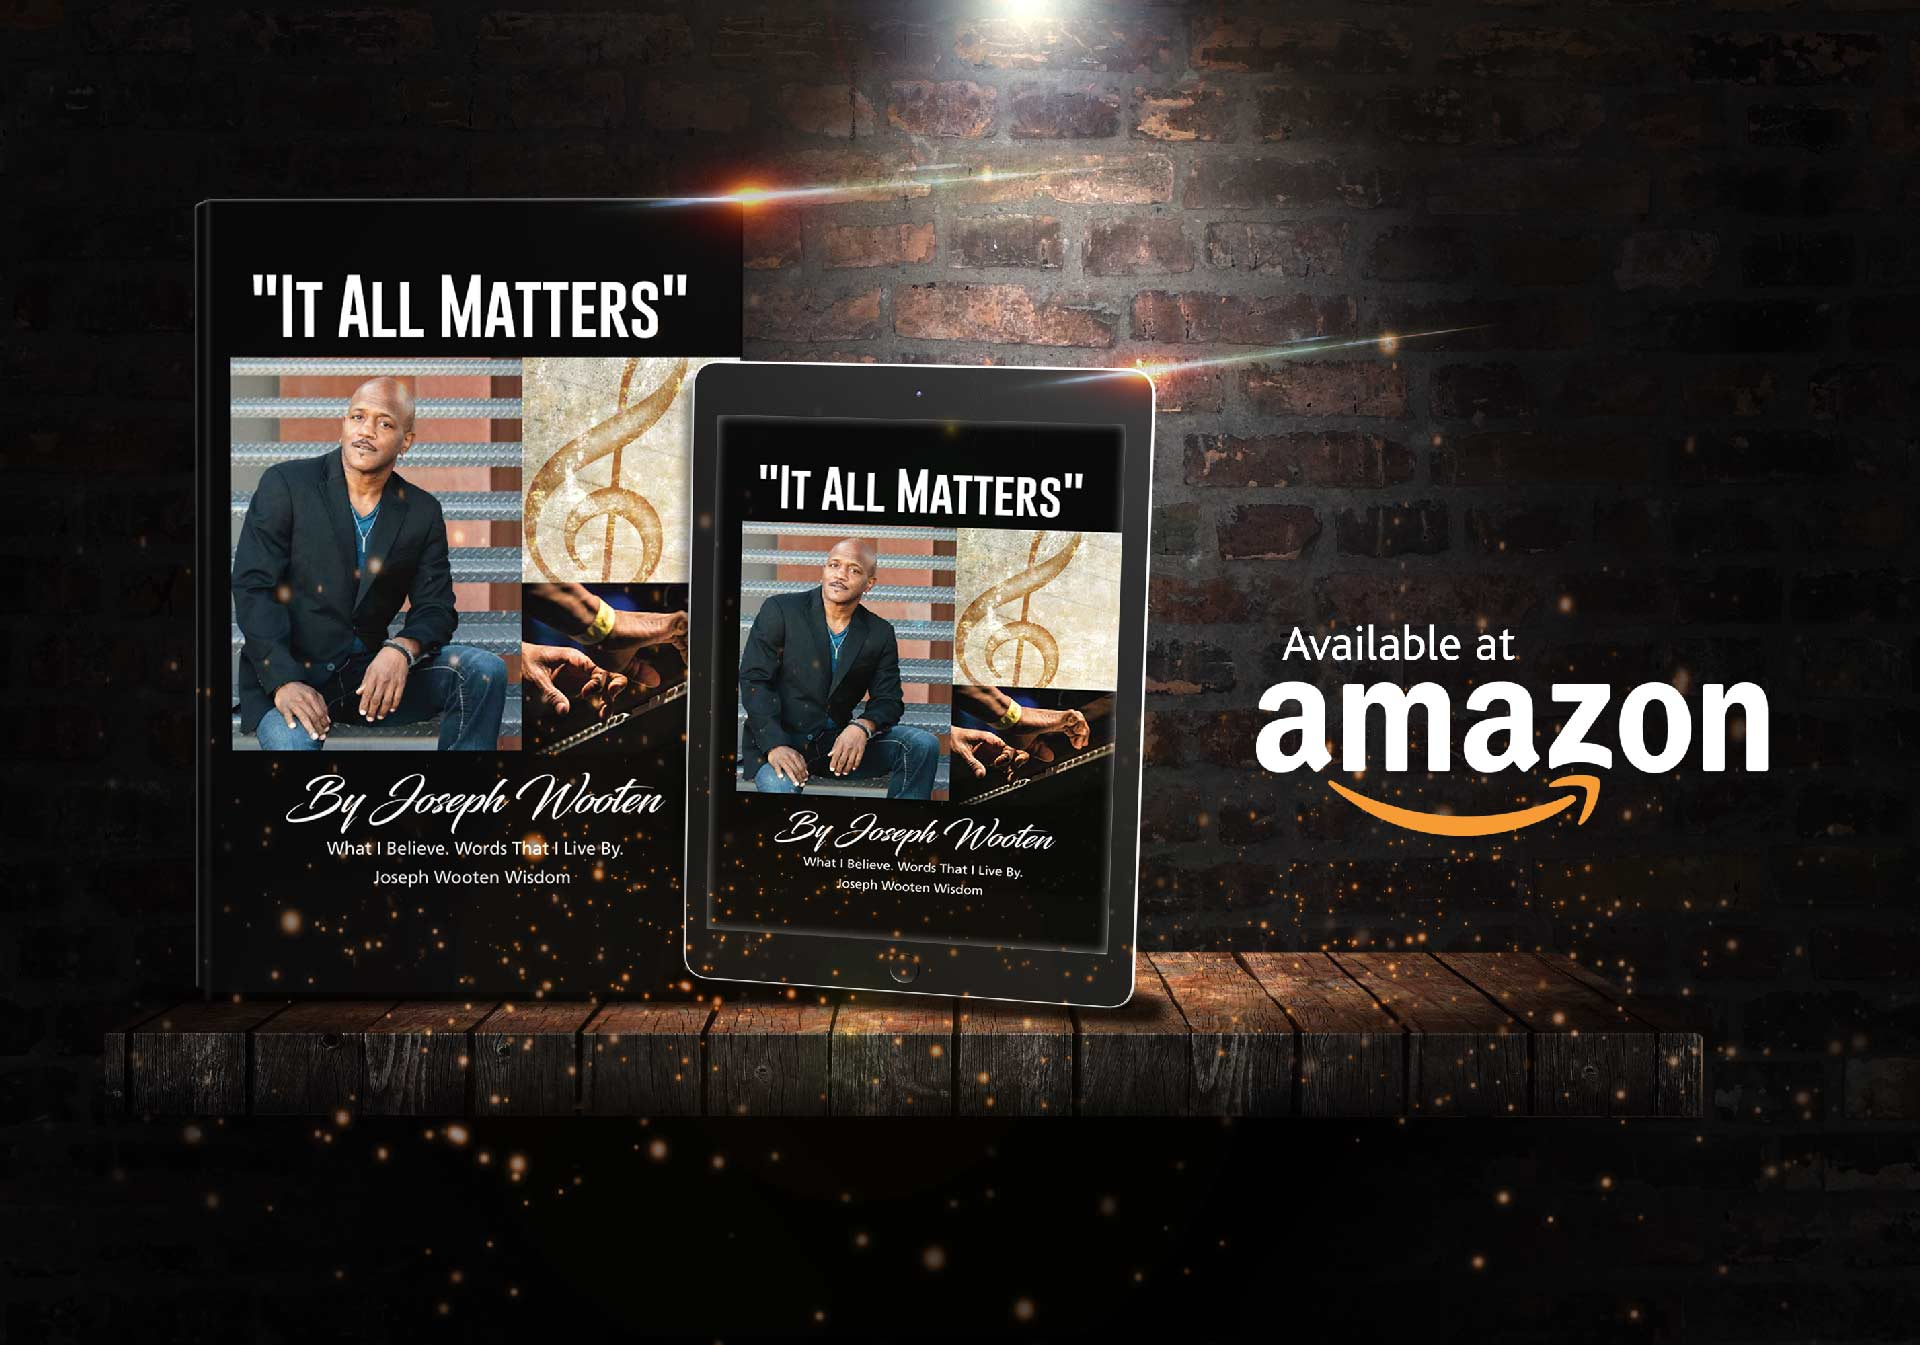 """Click to order the paperback or kindle version of the book """"It All Matters"""" by Joseph Wooten on Amazon.com"""